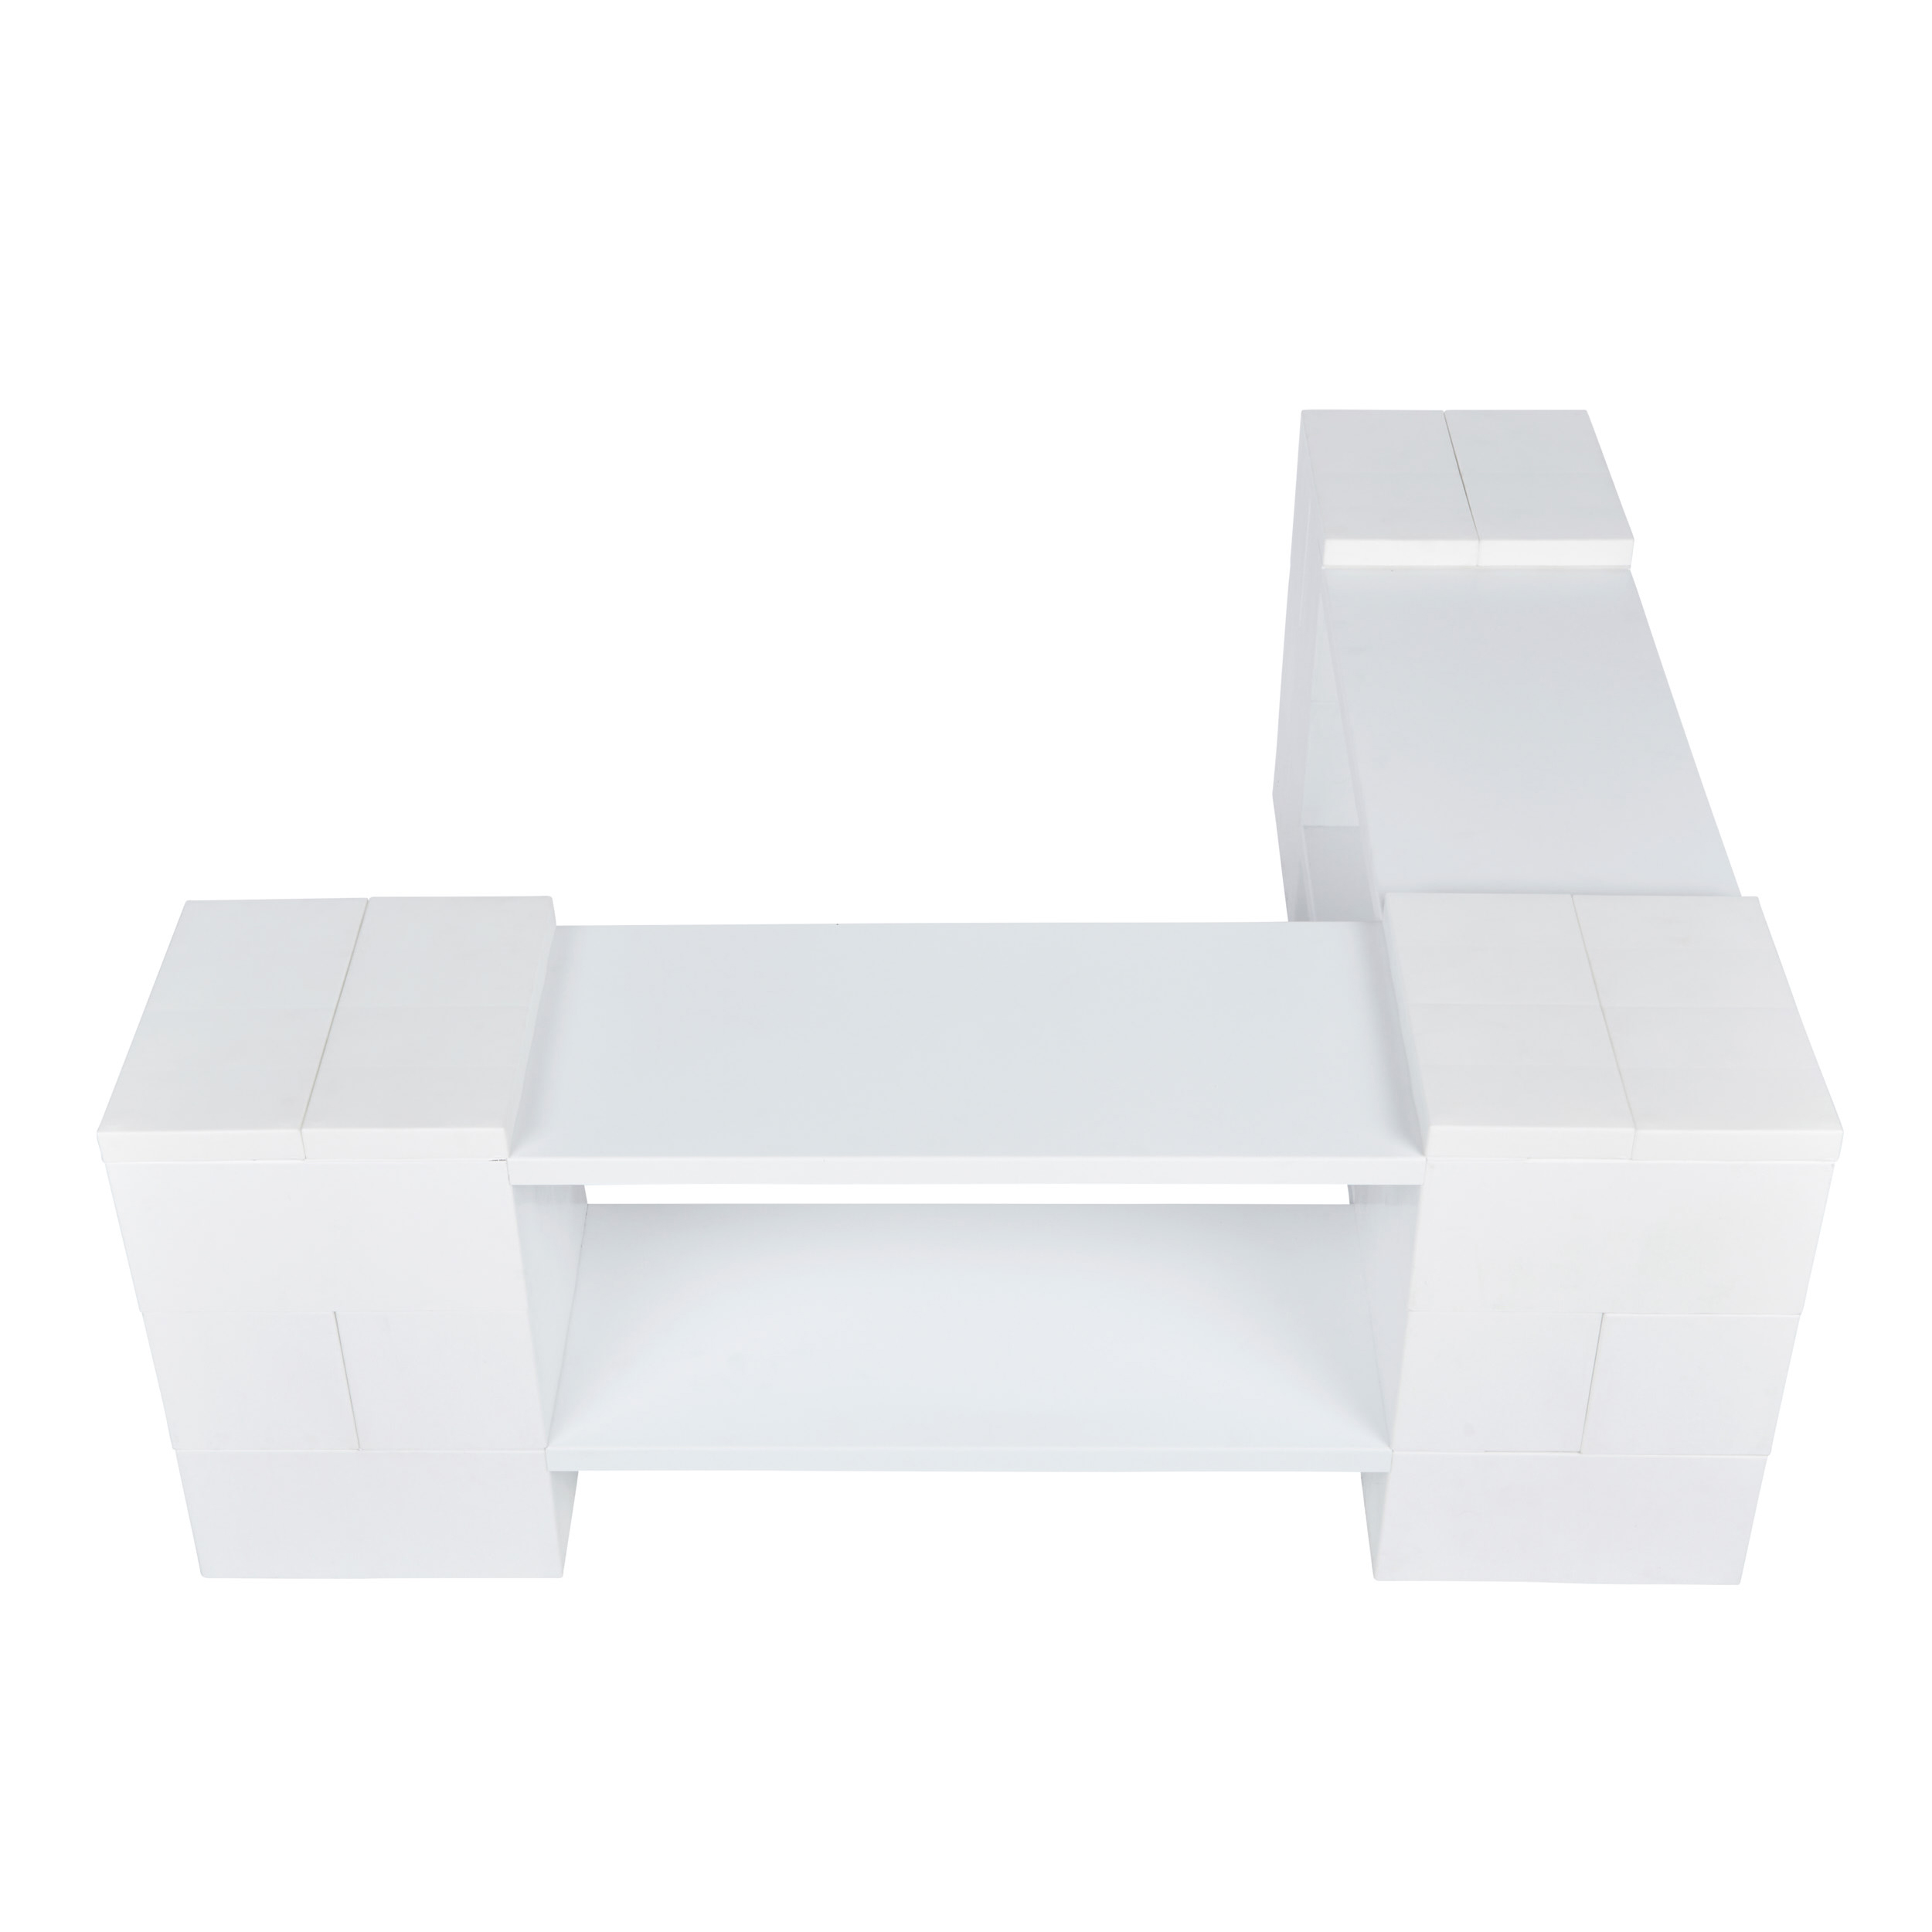 2 Level Corner Shelving Kit A